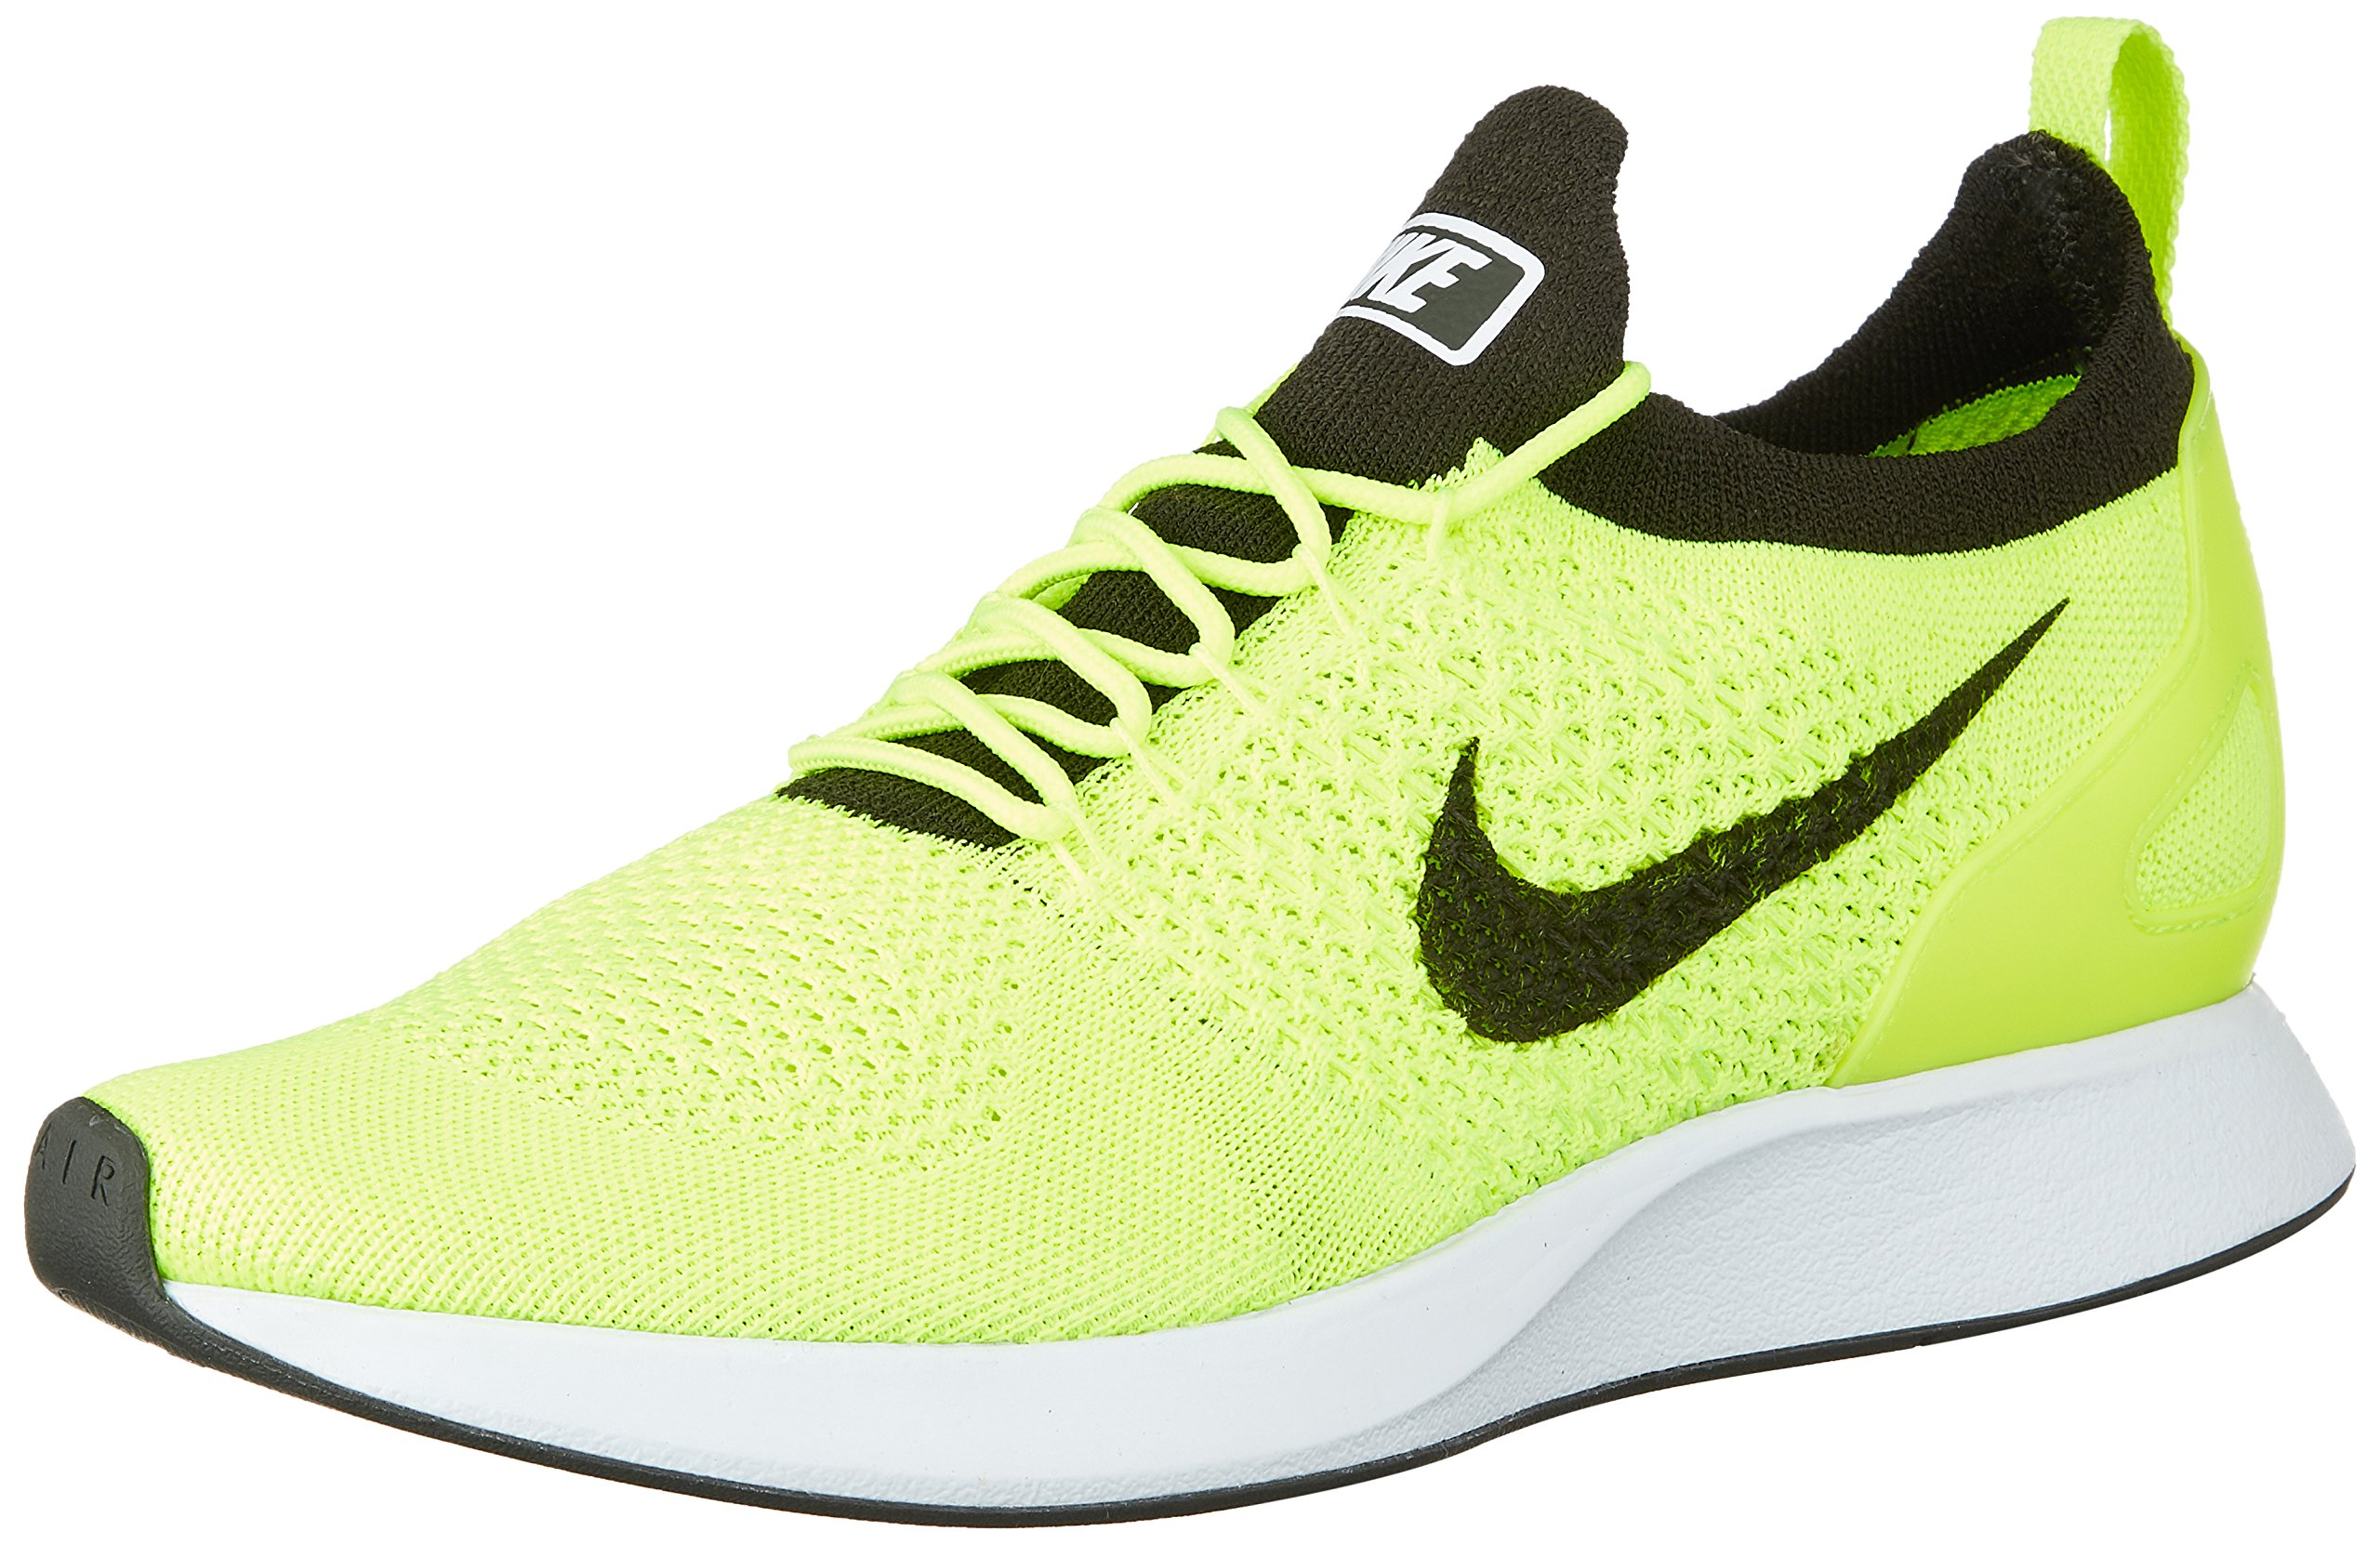 4cfb8cf2d080 Galleon - Nike Men s Air Zoom Mariah Flyknit Racer Running Shoes-Volt White  Sequoia-10.5